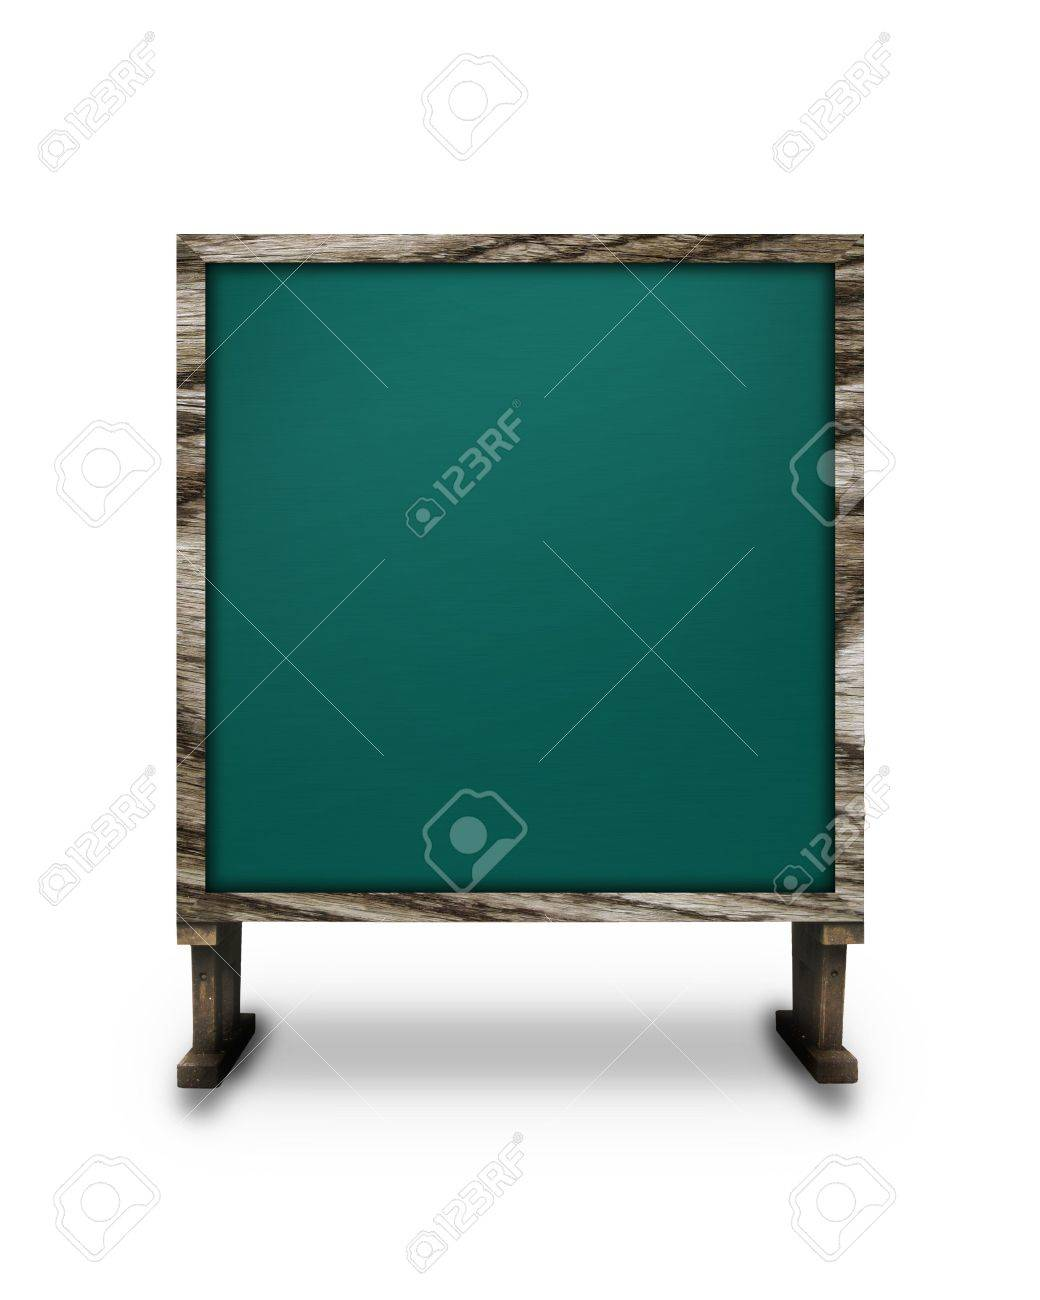 Material image that can be used for WEB design Stock Photo - 8162657